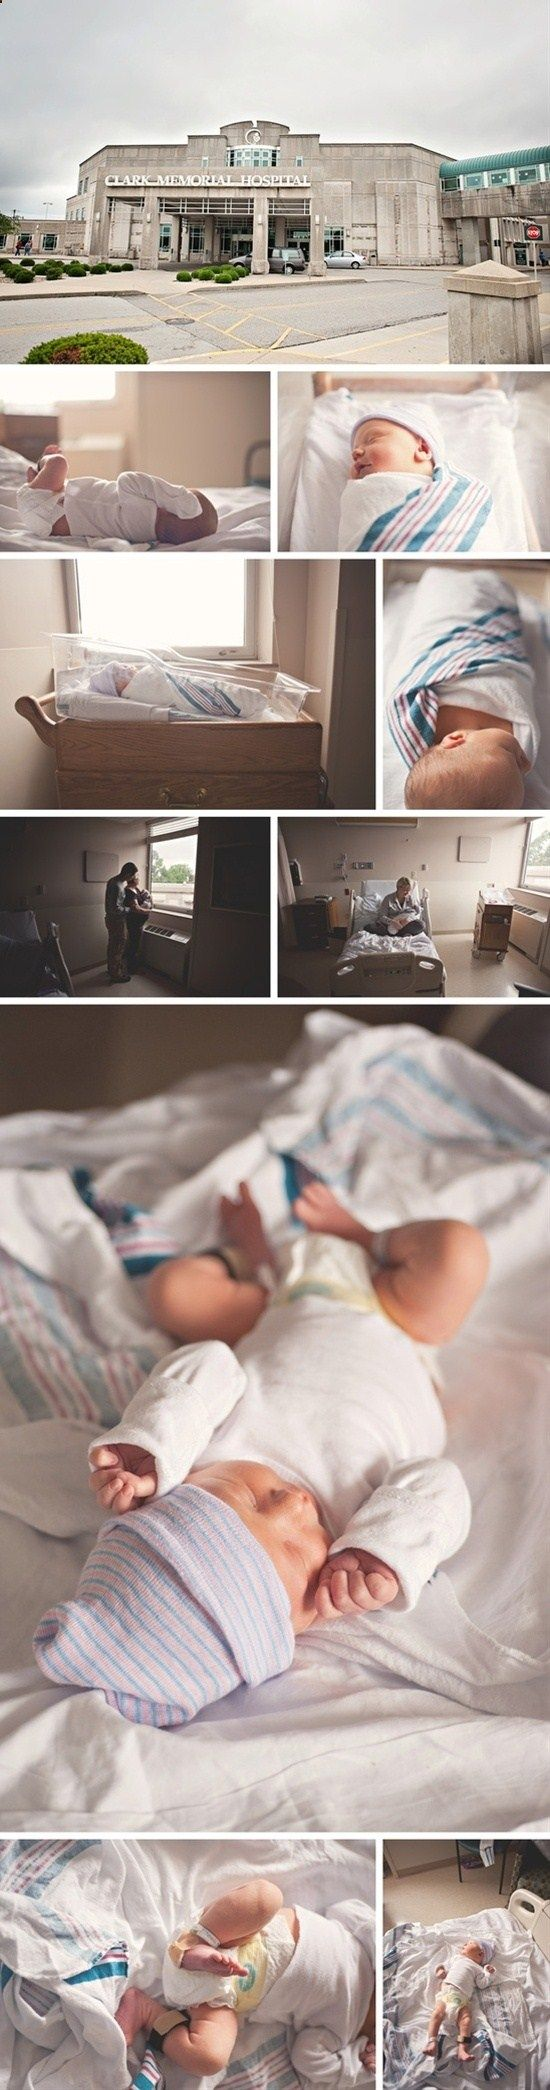 Hospital Newborn Photo Session - need to get outside of hospital